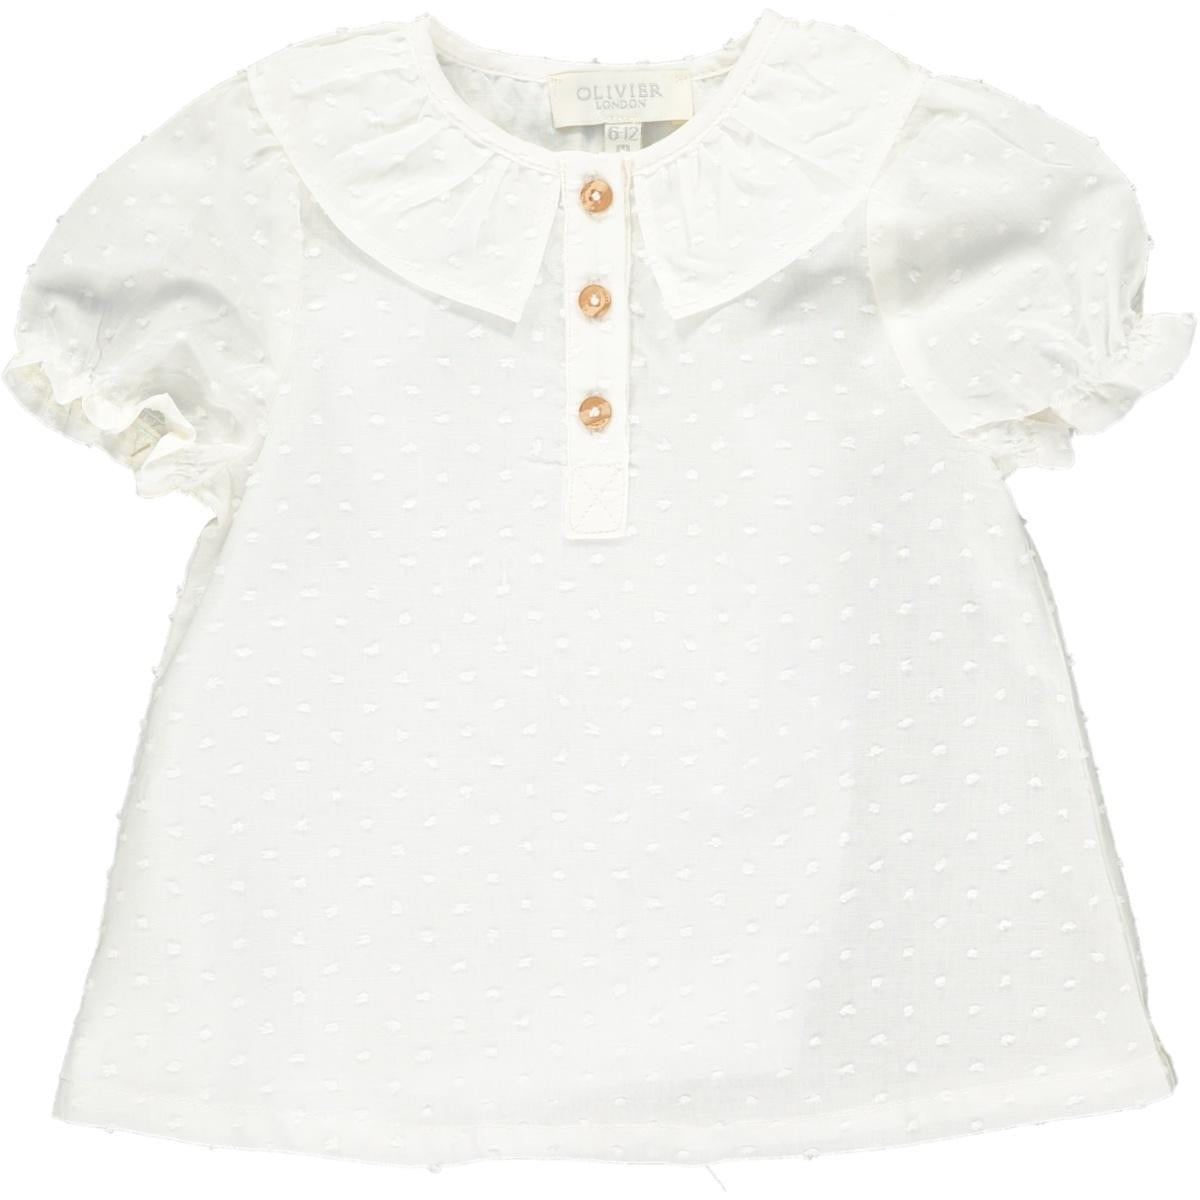 Willamina Top - Plumeti White